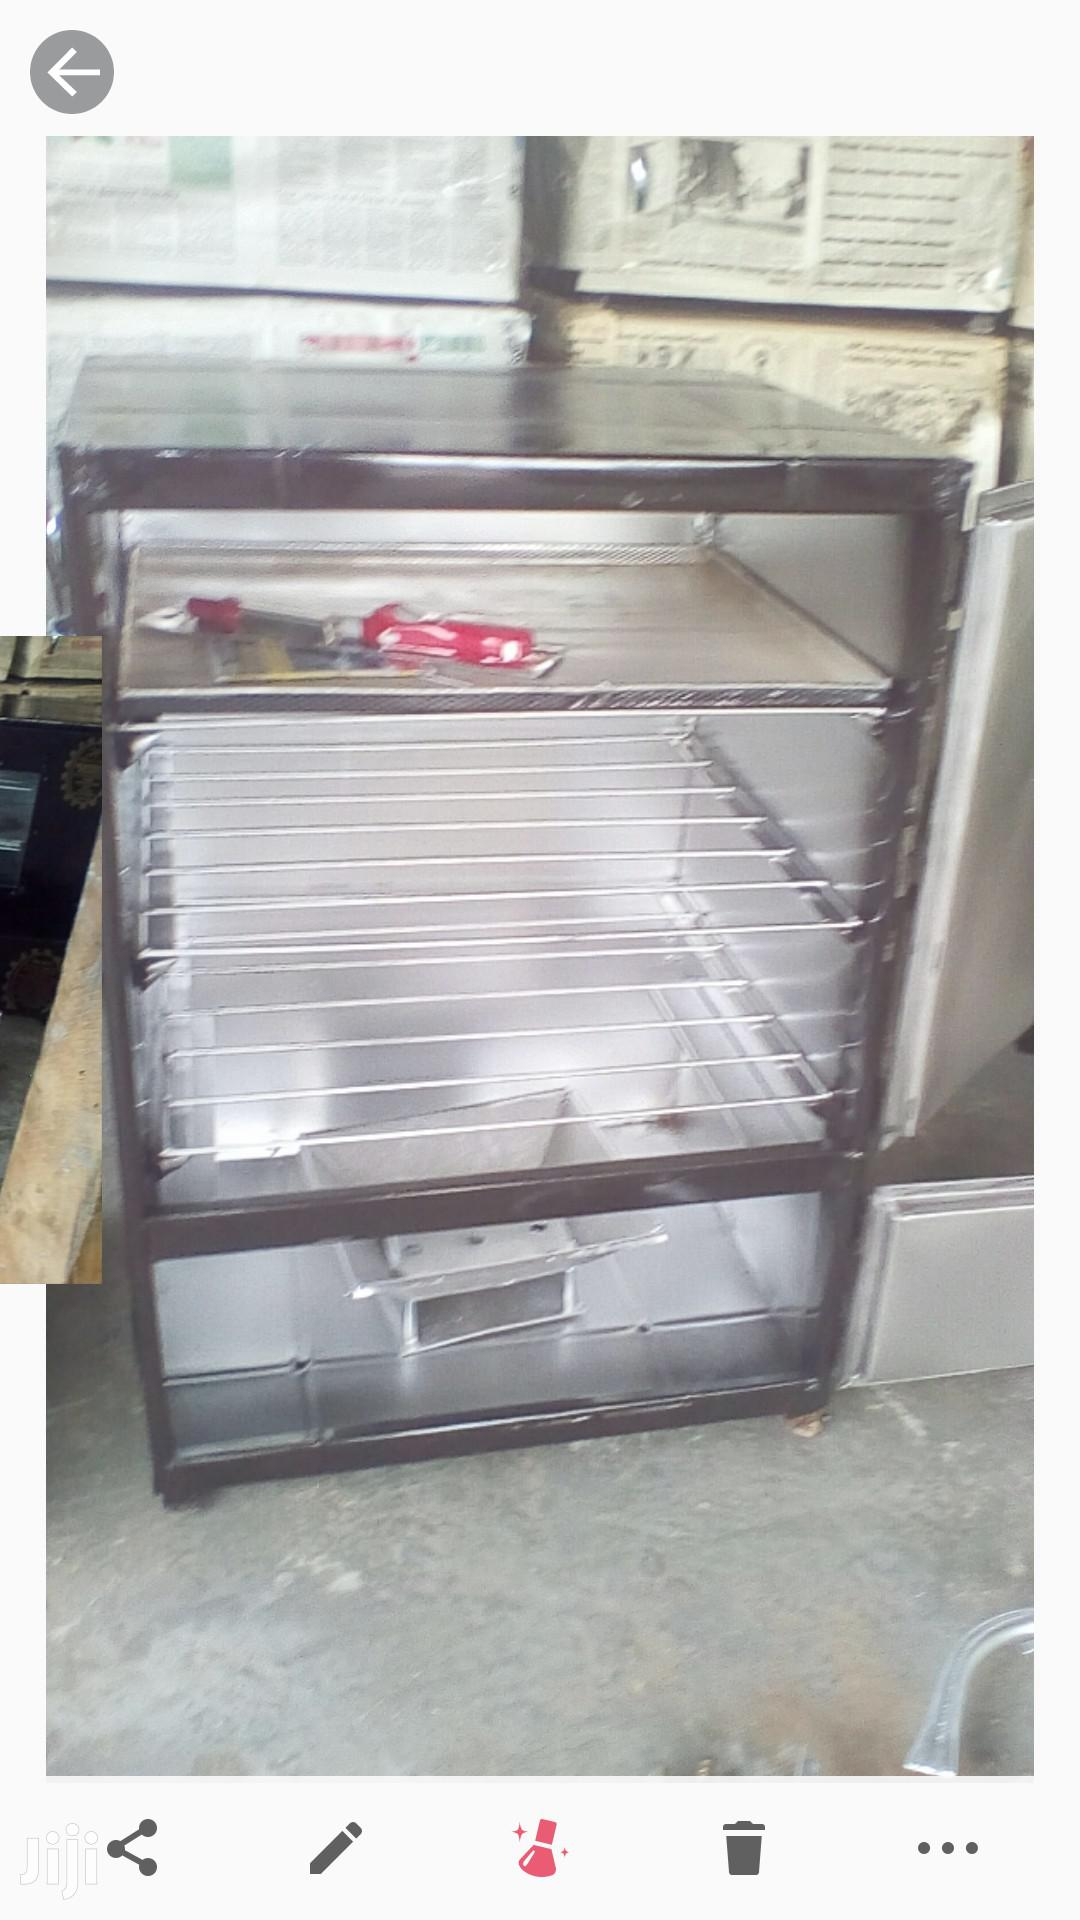 Easytech Enterprises Charcoal And Gas Oven | Industrial Ovens for sale in Ilorin West, Kwara State, Nigeria